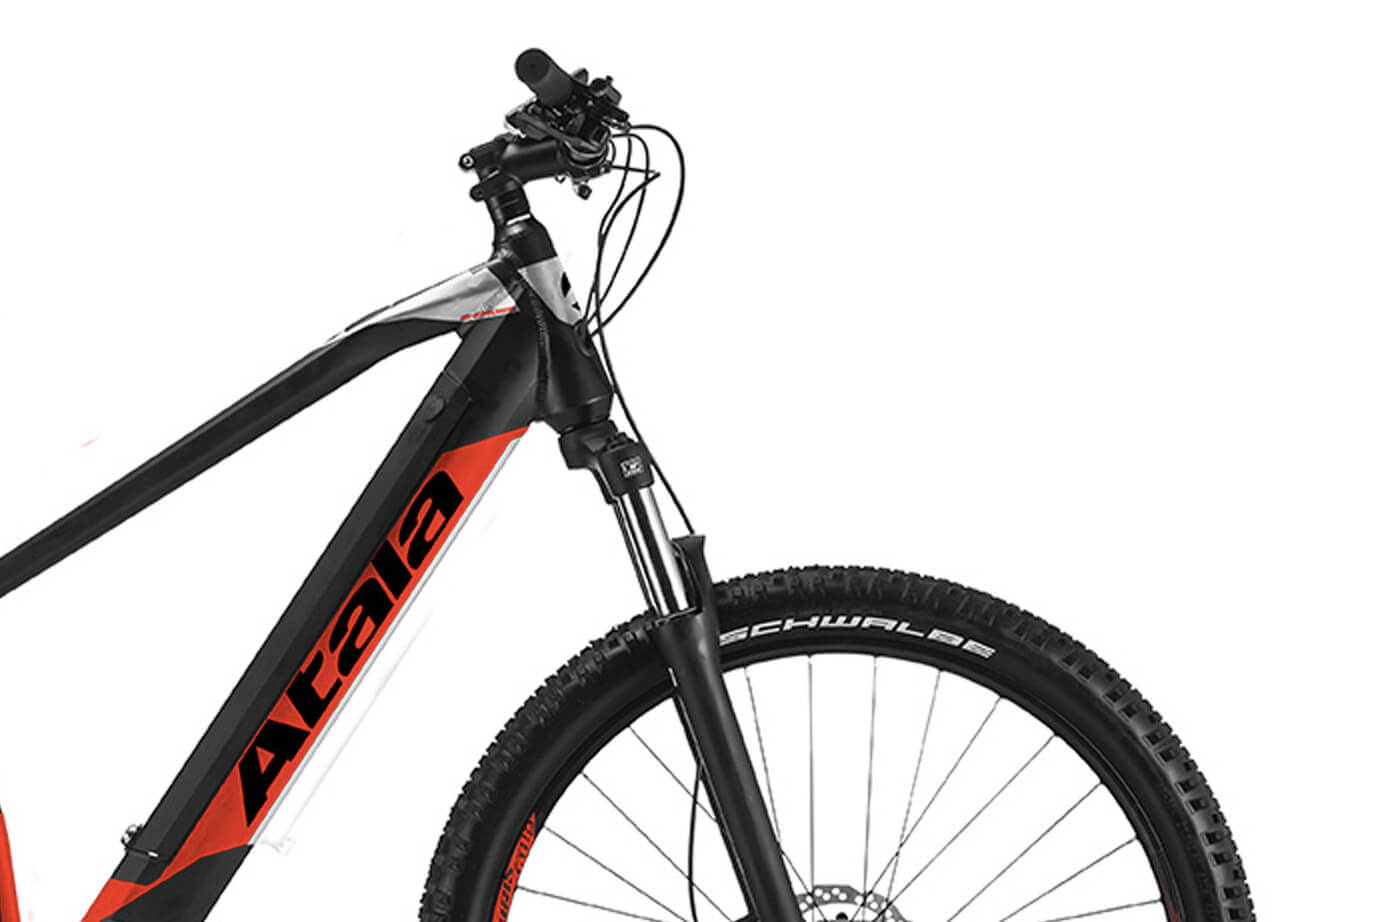 Atala B-Cross i AM80 500